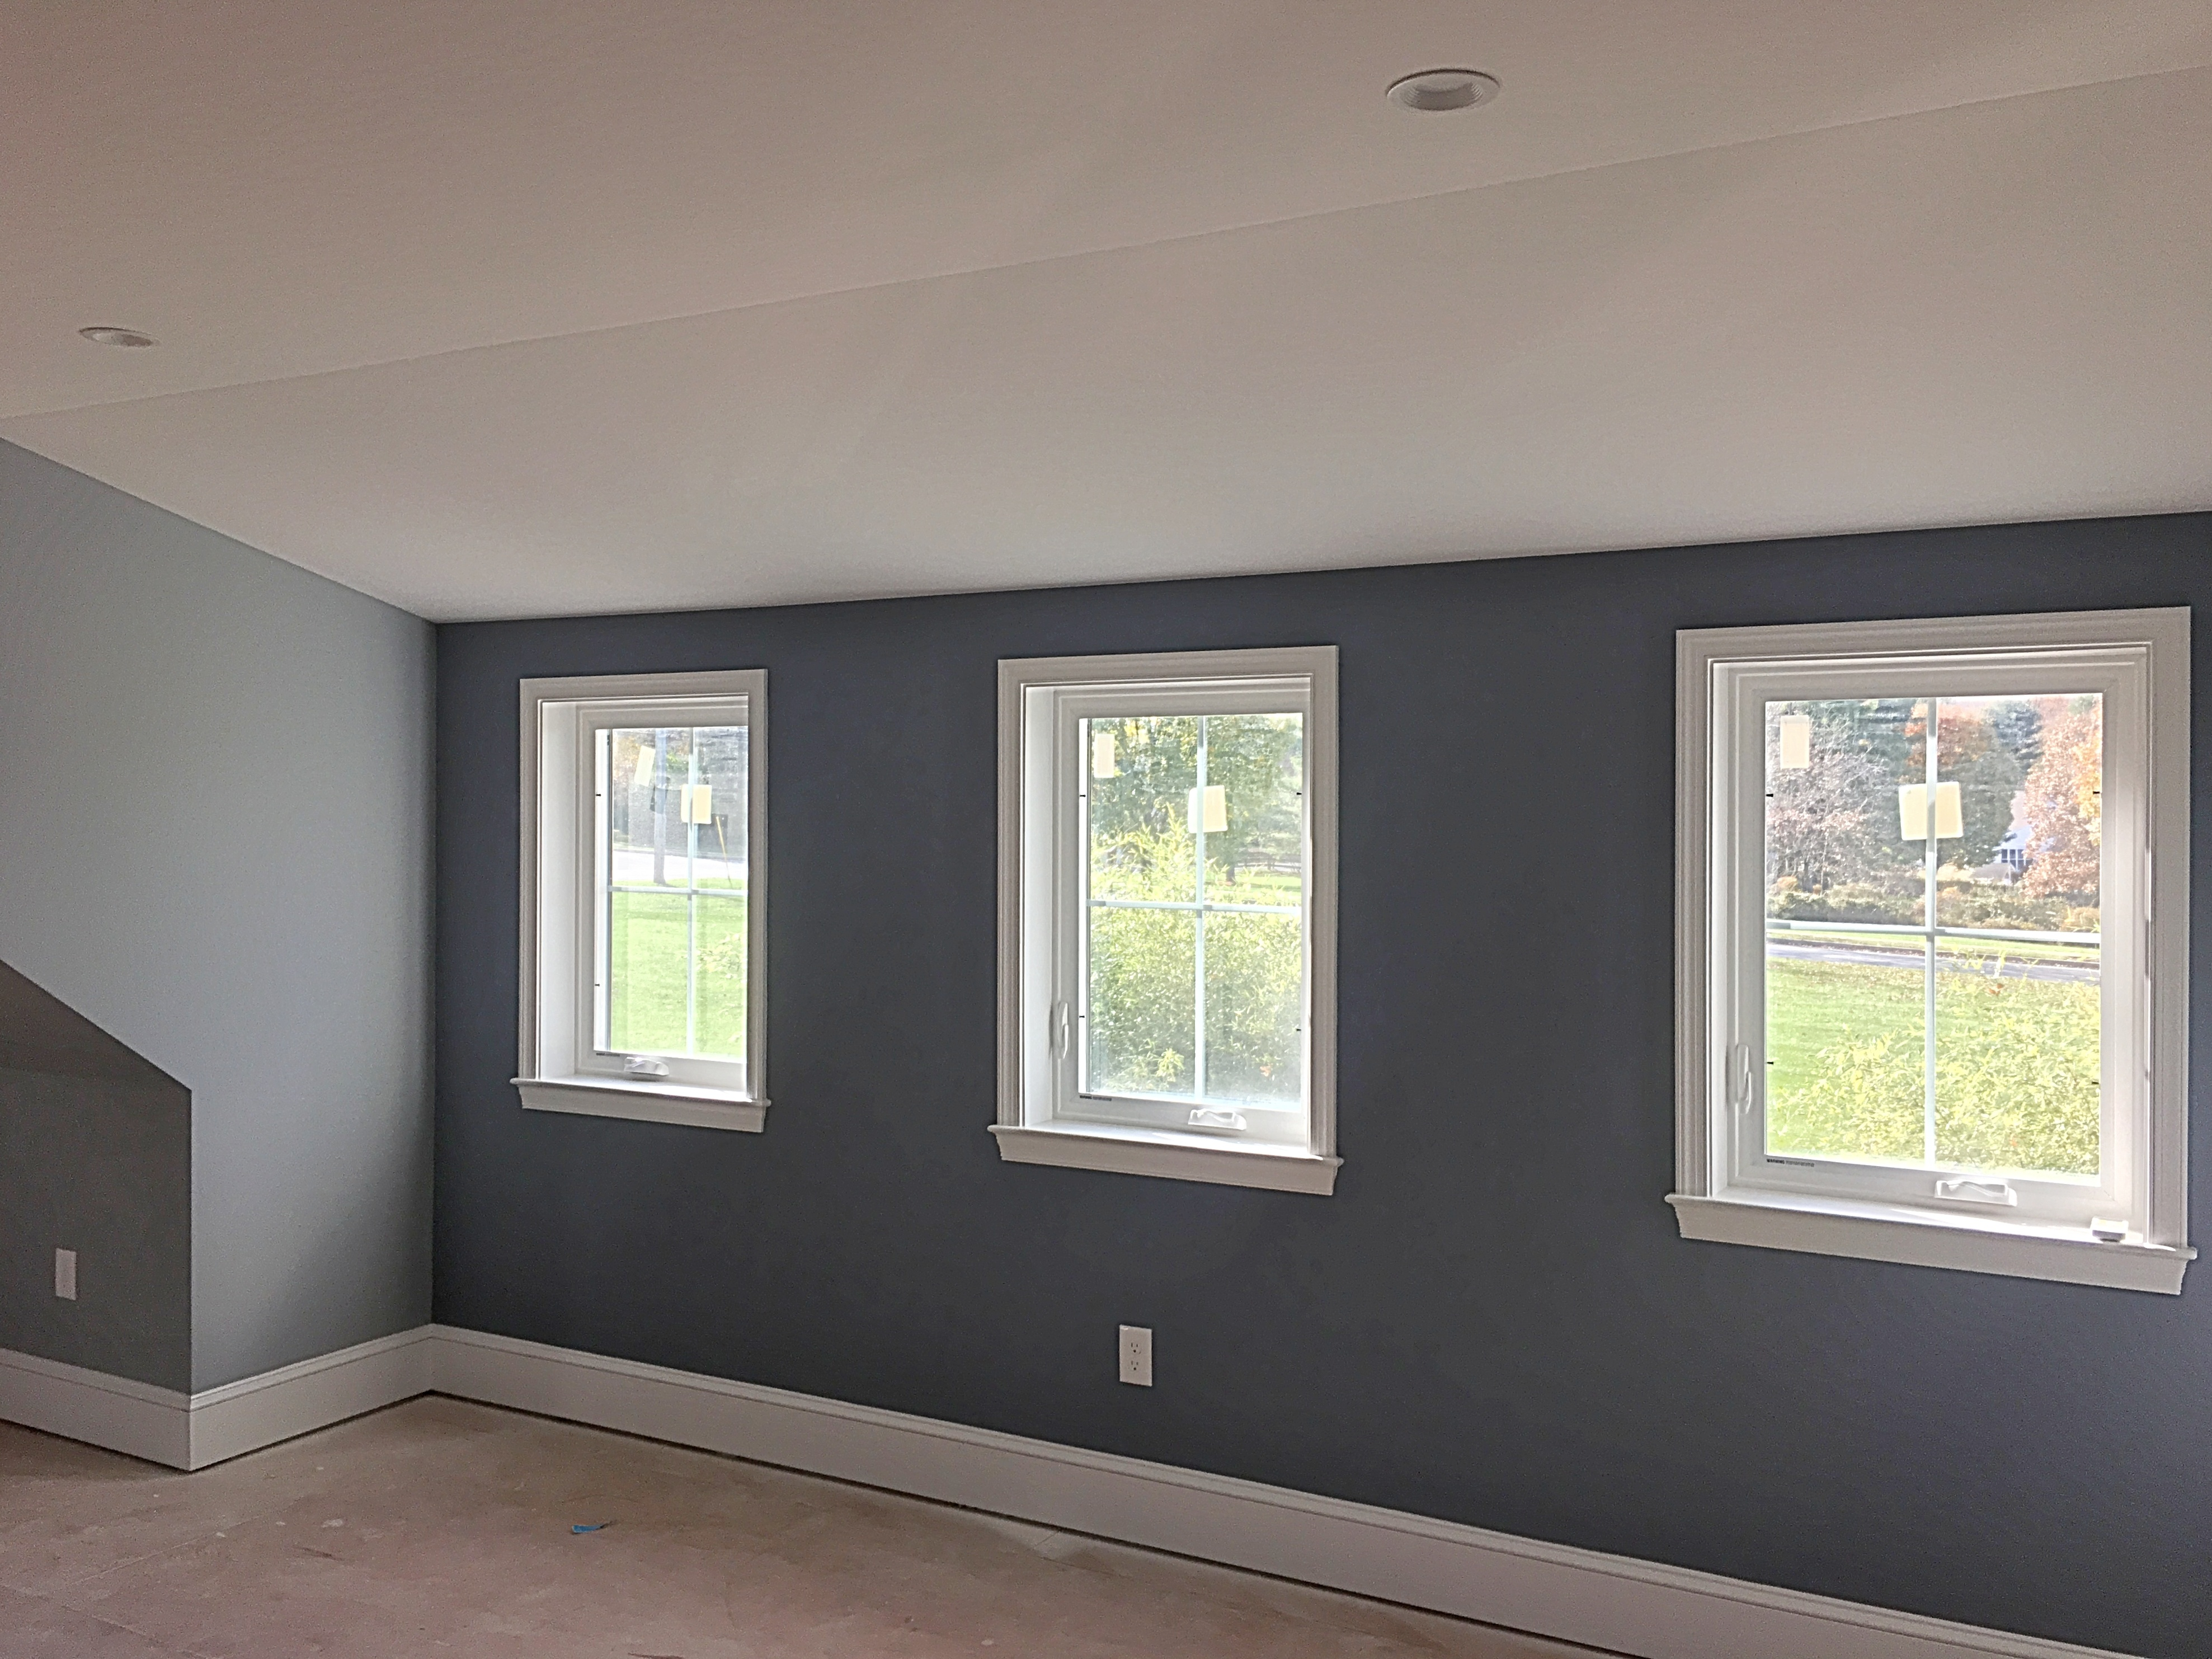 little-love-remodel-exton-reveal-playroom.jpg